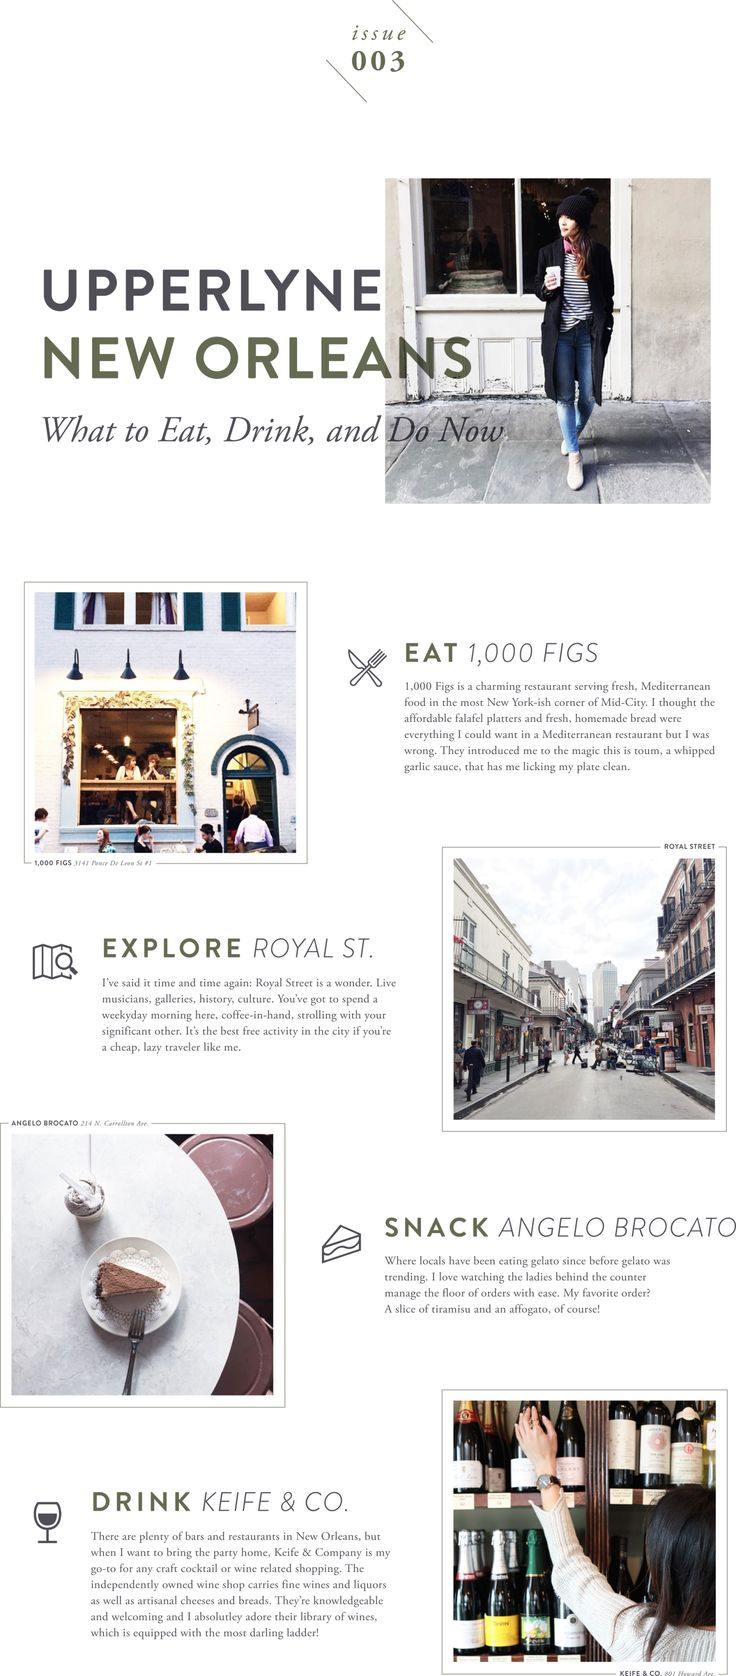 What to Eat, Drink, & Do in New Orleans (Issue 003)